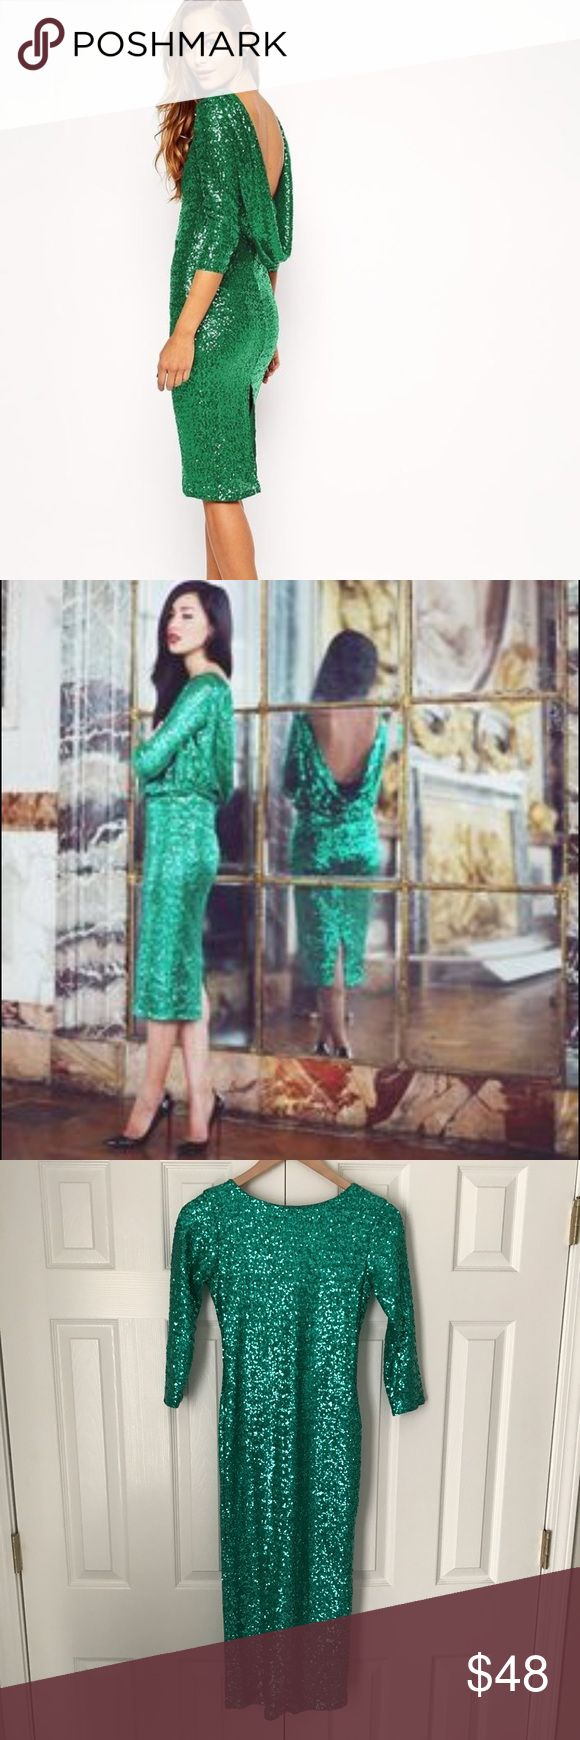 Green sequin midi dress. Asos green sequin midi. Size 4. Absolutely beautiful and new without tags! ASOS Dresses Midi